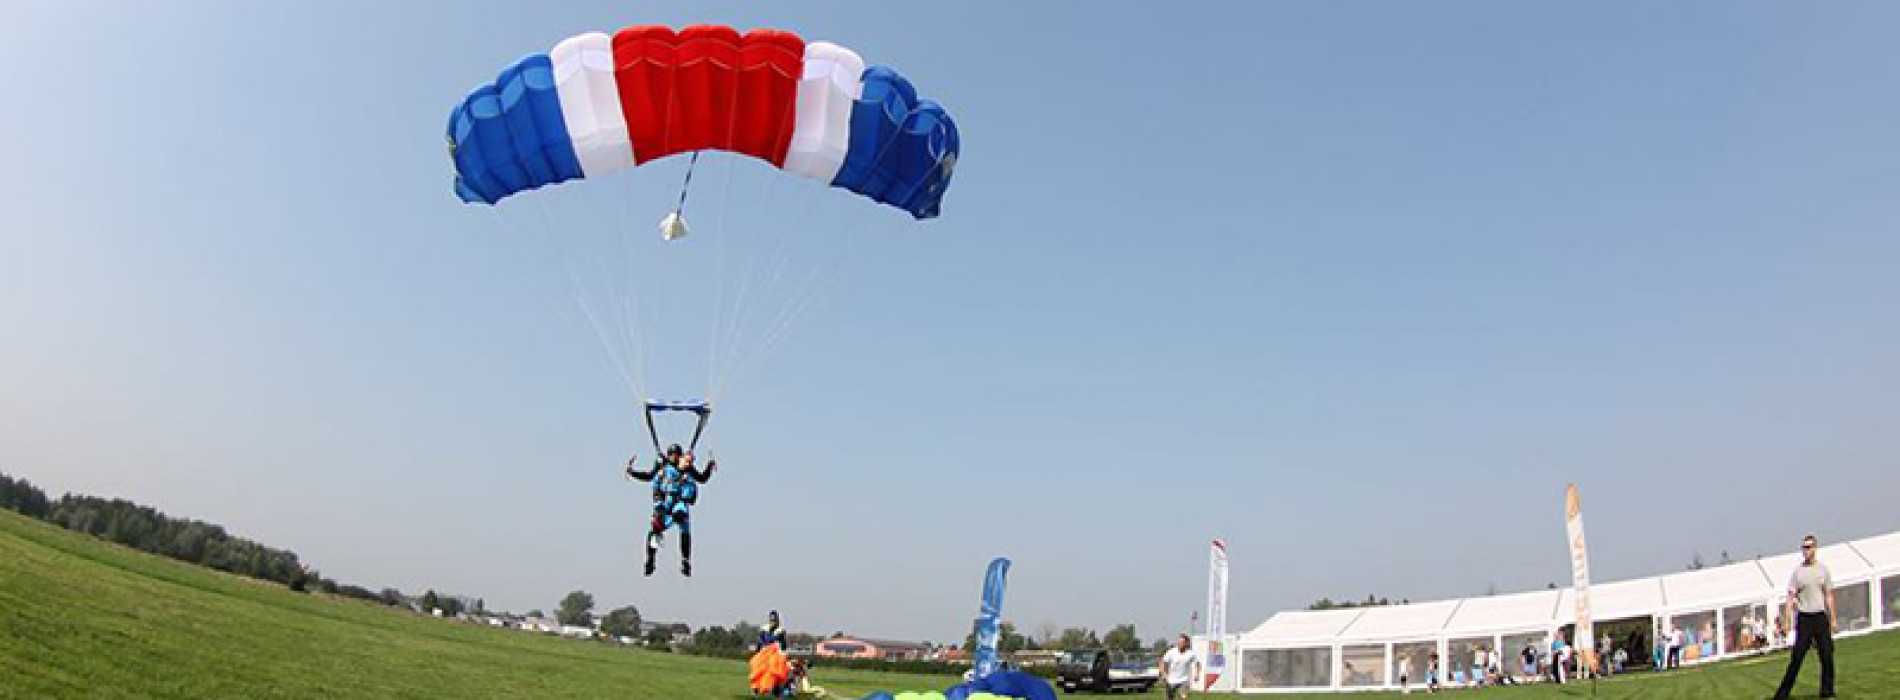 Skydiving clipart parachute jump With of disability disability skydiving